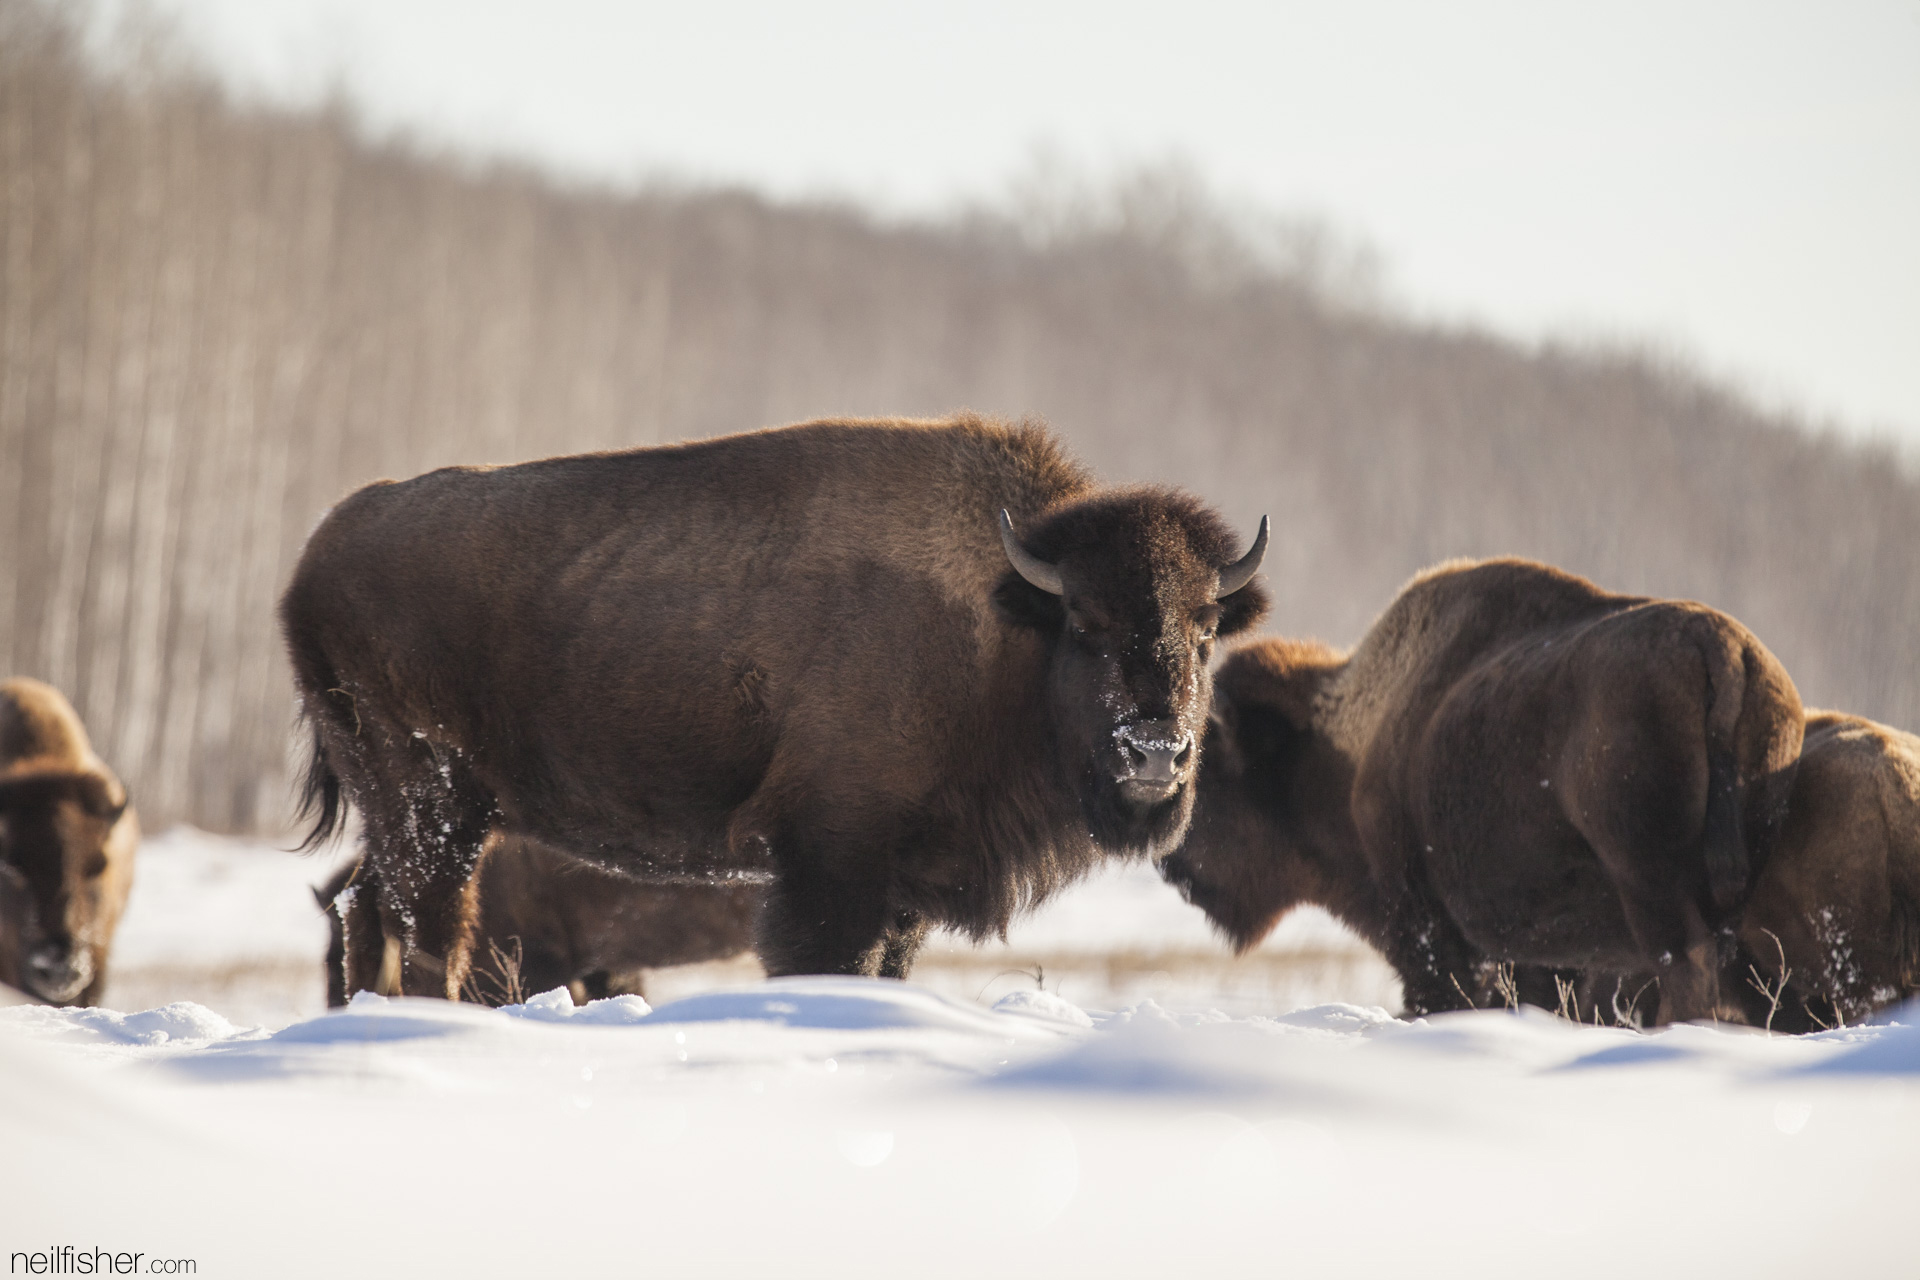 """The plains bison (bison bison bison) can be distinguished from the wood bison (bison bison athabascae) by their flat back, whereas the wood bison has a large centered hump. The plains bison also has a more developed beard and """"throat mane"""" than the wood bison."""